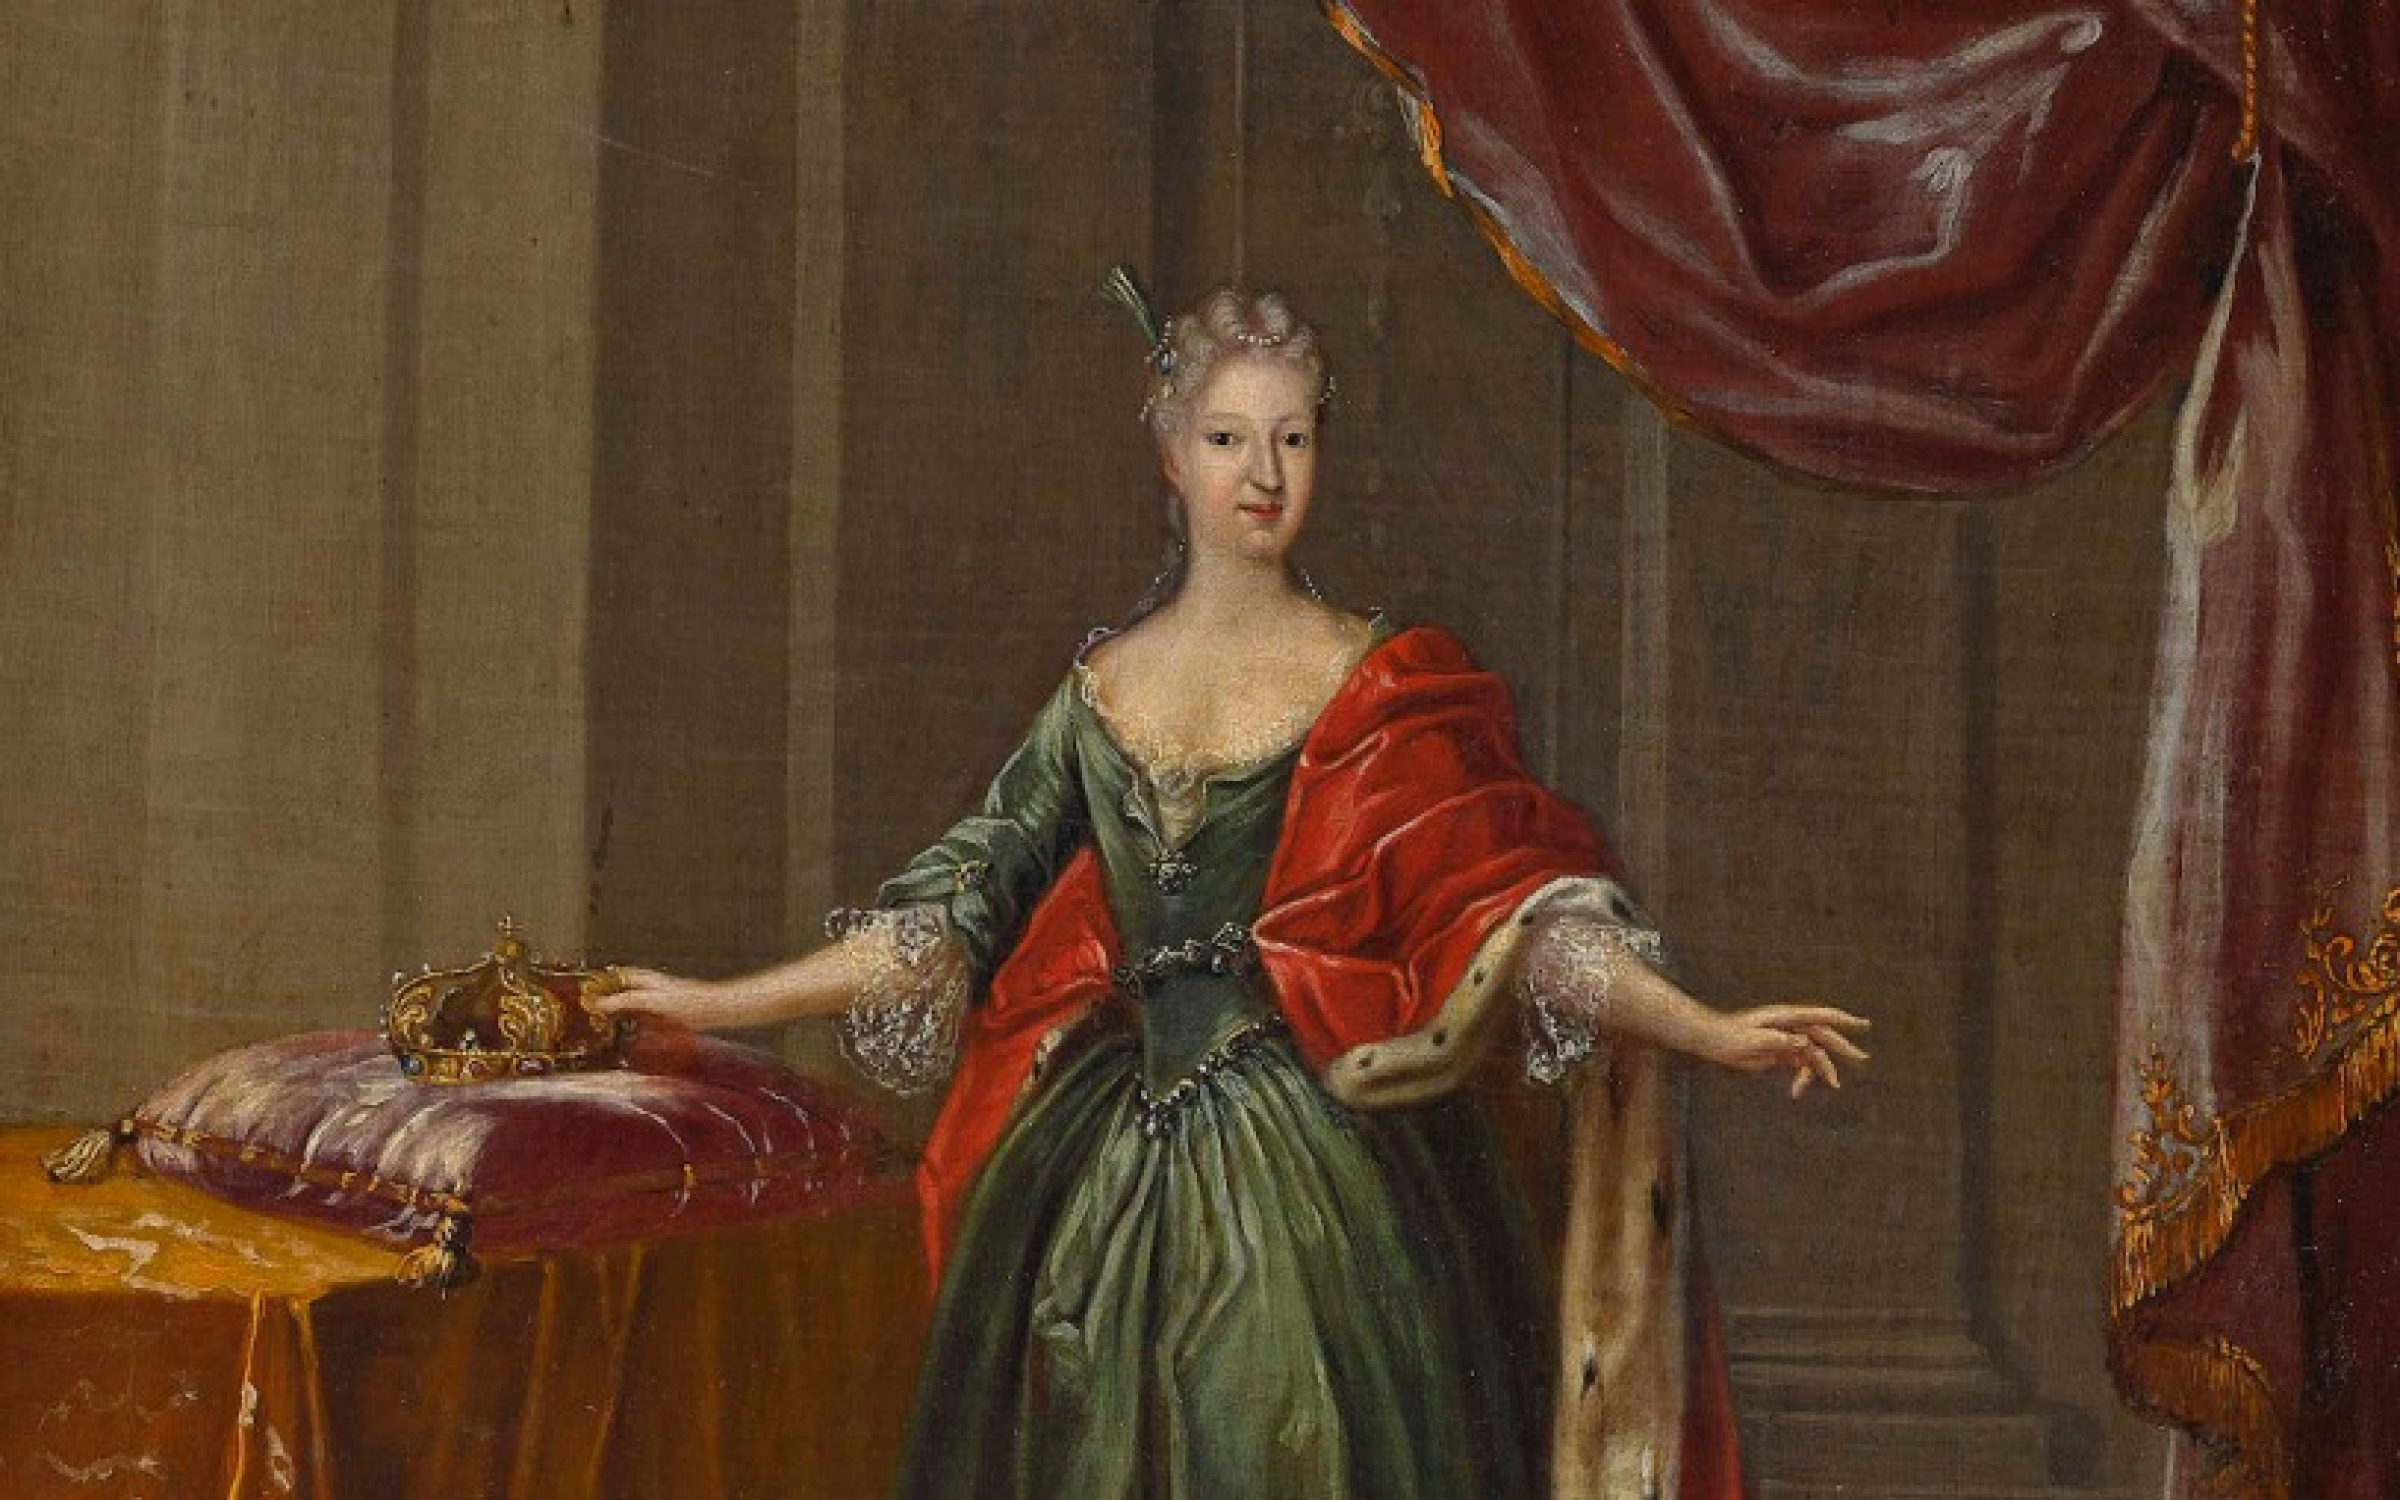 An eighteenth-century portrait of Maria Antonia of Bavaria, Electress of Saxony, by Peter Jacob Horemans. Credit: Heritage Images / Getty Images.